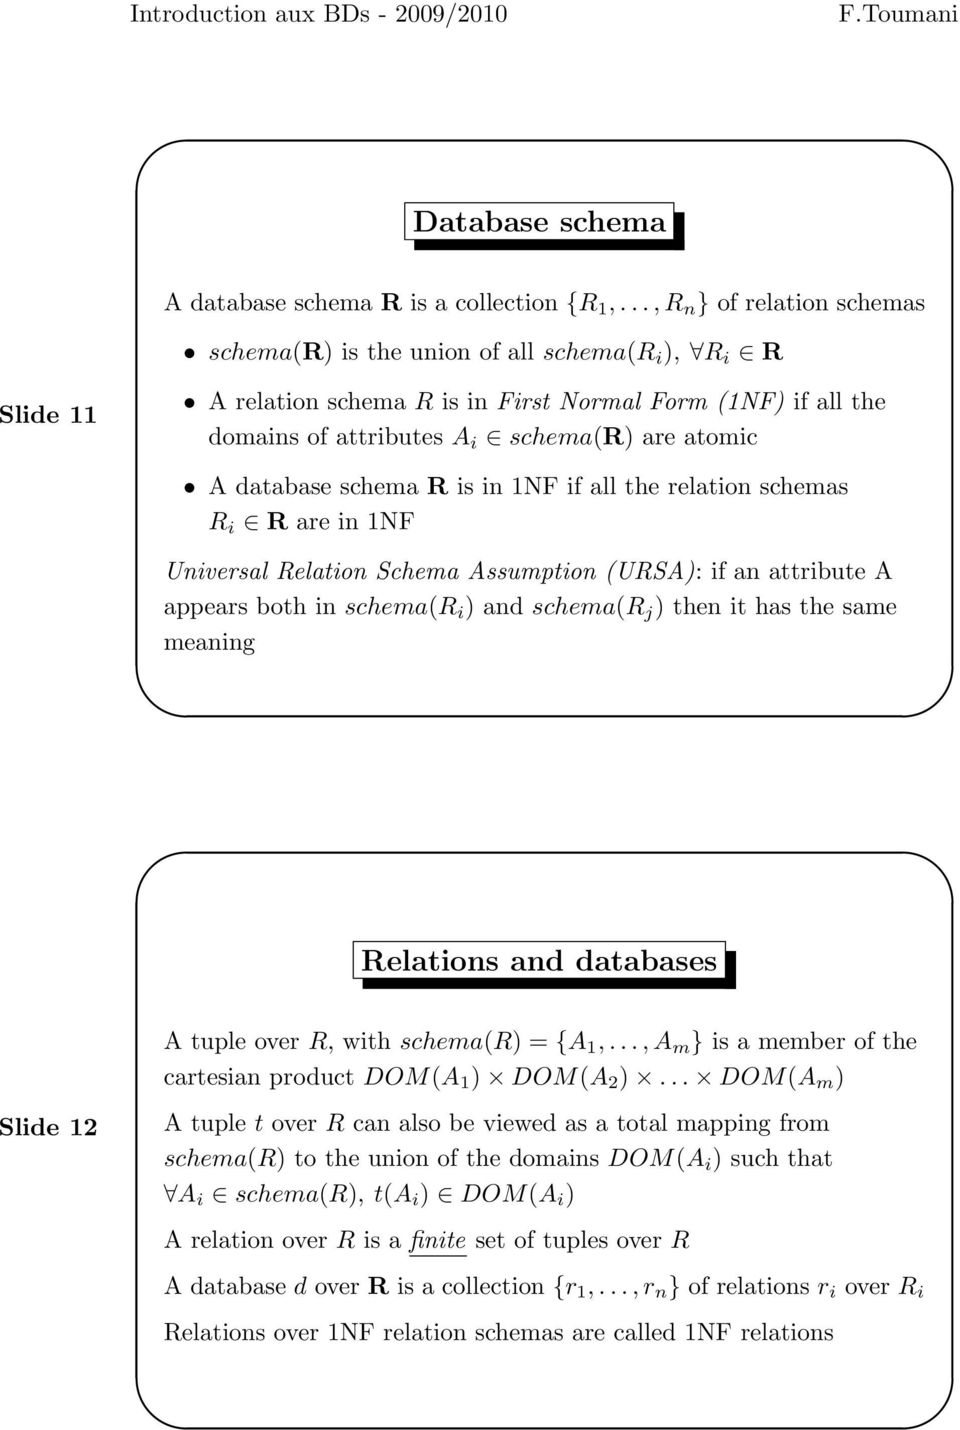 database schema R is in 1NF if all the relation schemas R i R are in 1NF Universal Relation Schema Assumption (URSA): if an attribute A appears both in schema(r i ) and schema(r j ) then it has the